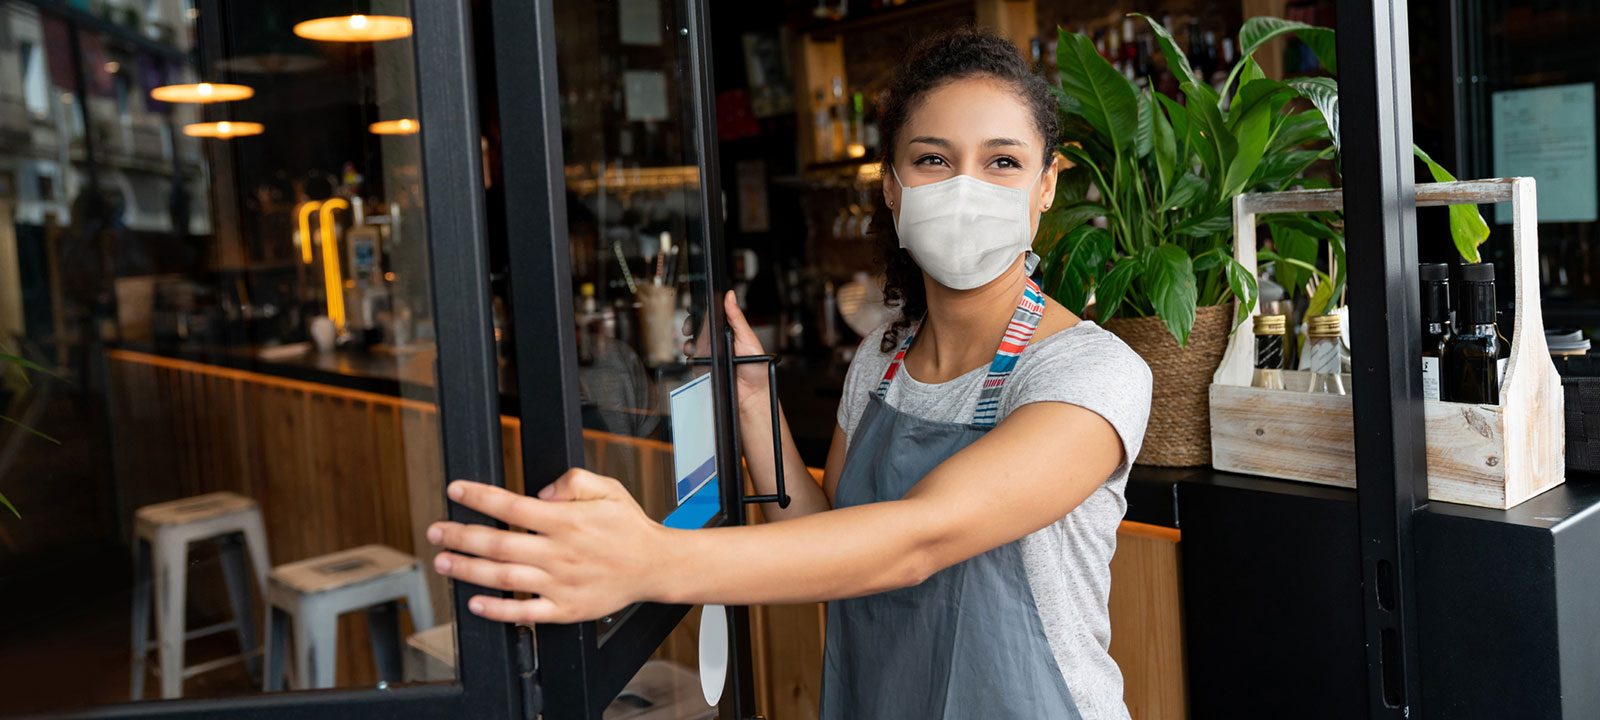 Woman wearing mask opens a cafe door